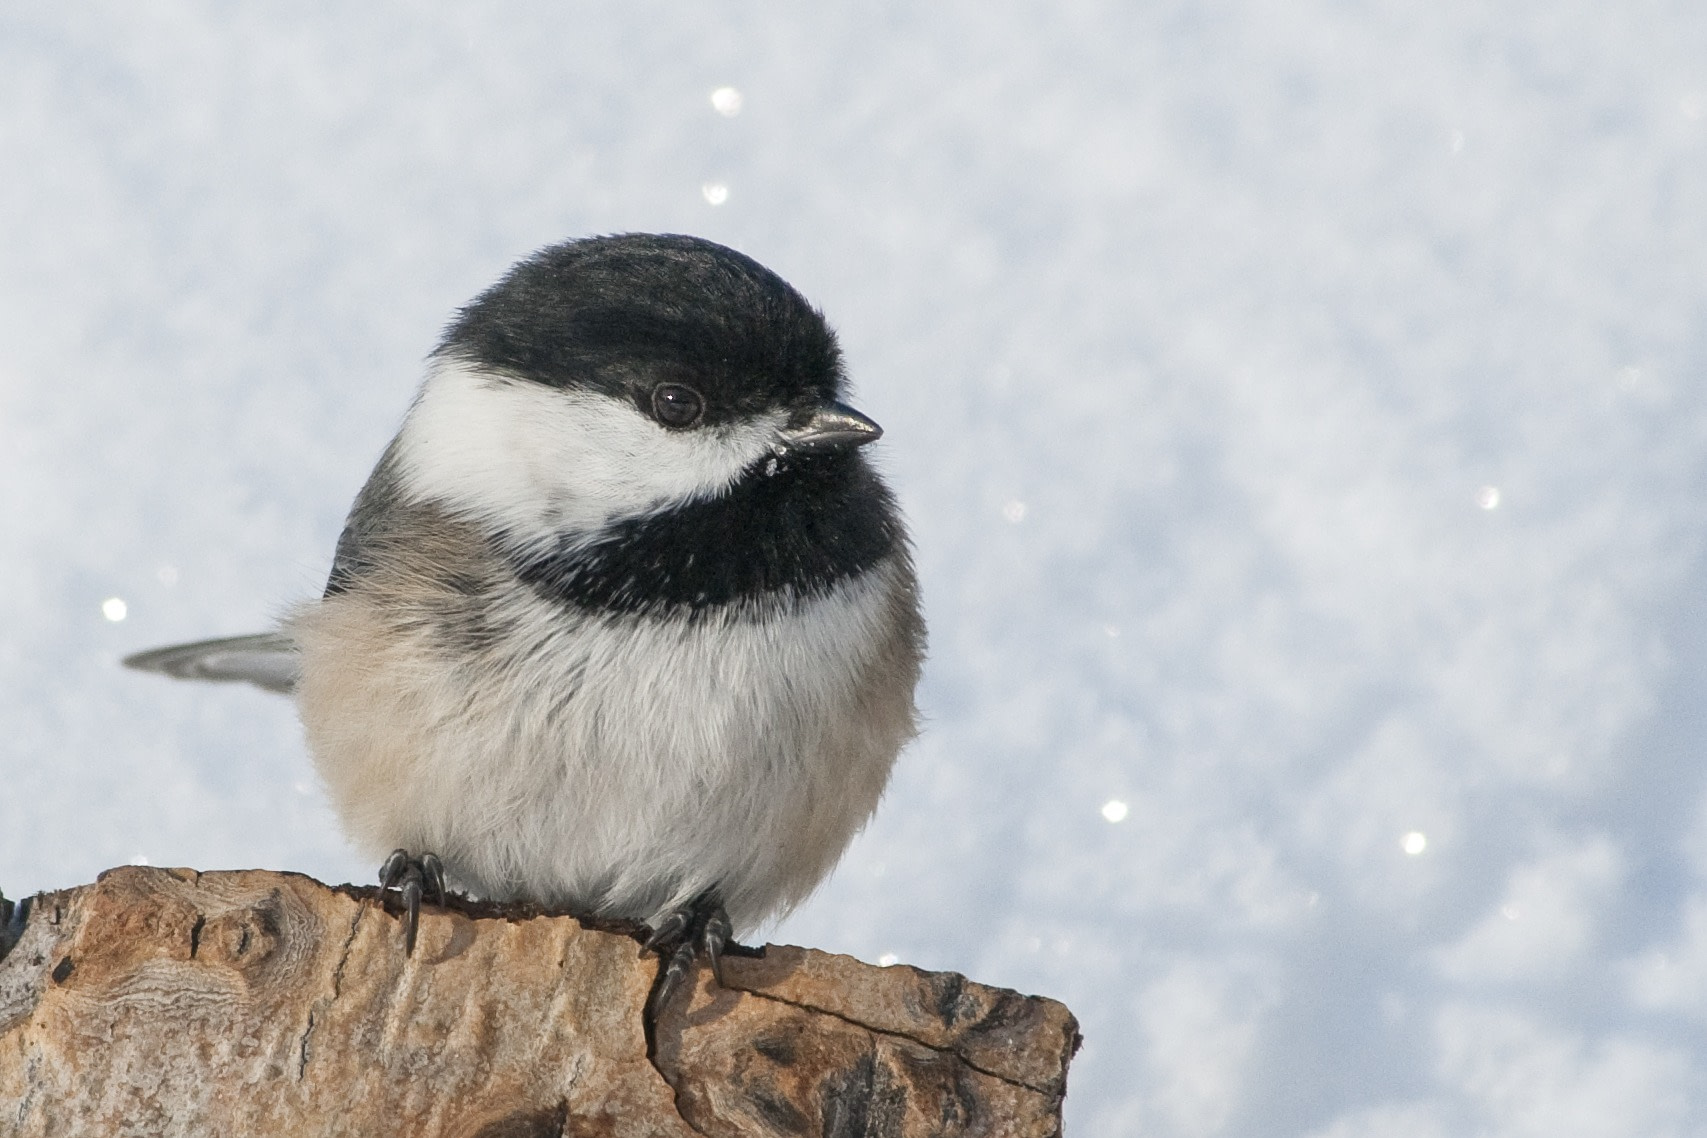 A cute Black-capped Chickadee perched in front of a wall of shimmering snow